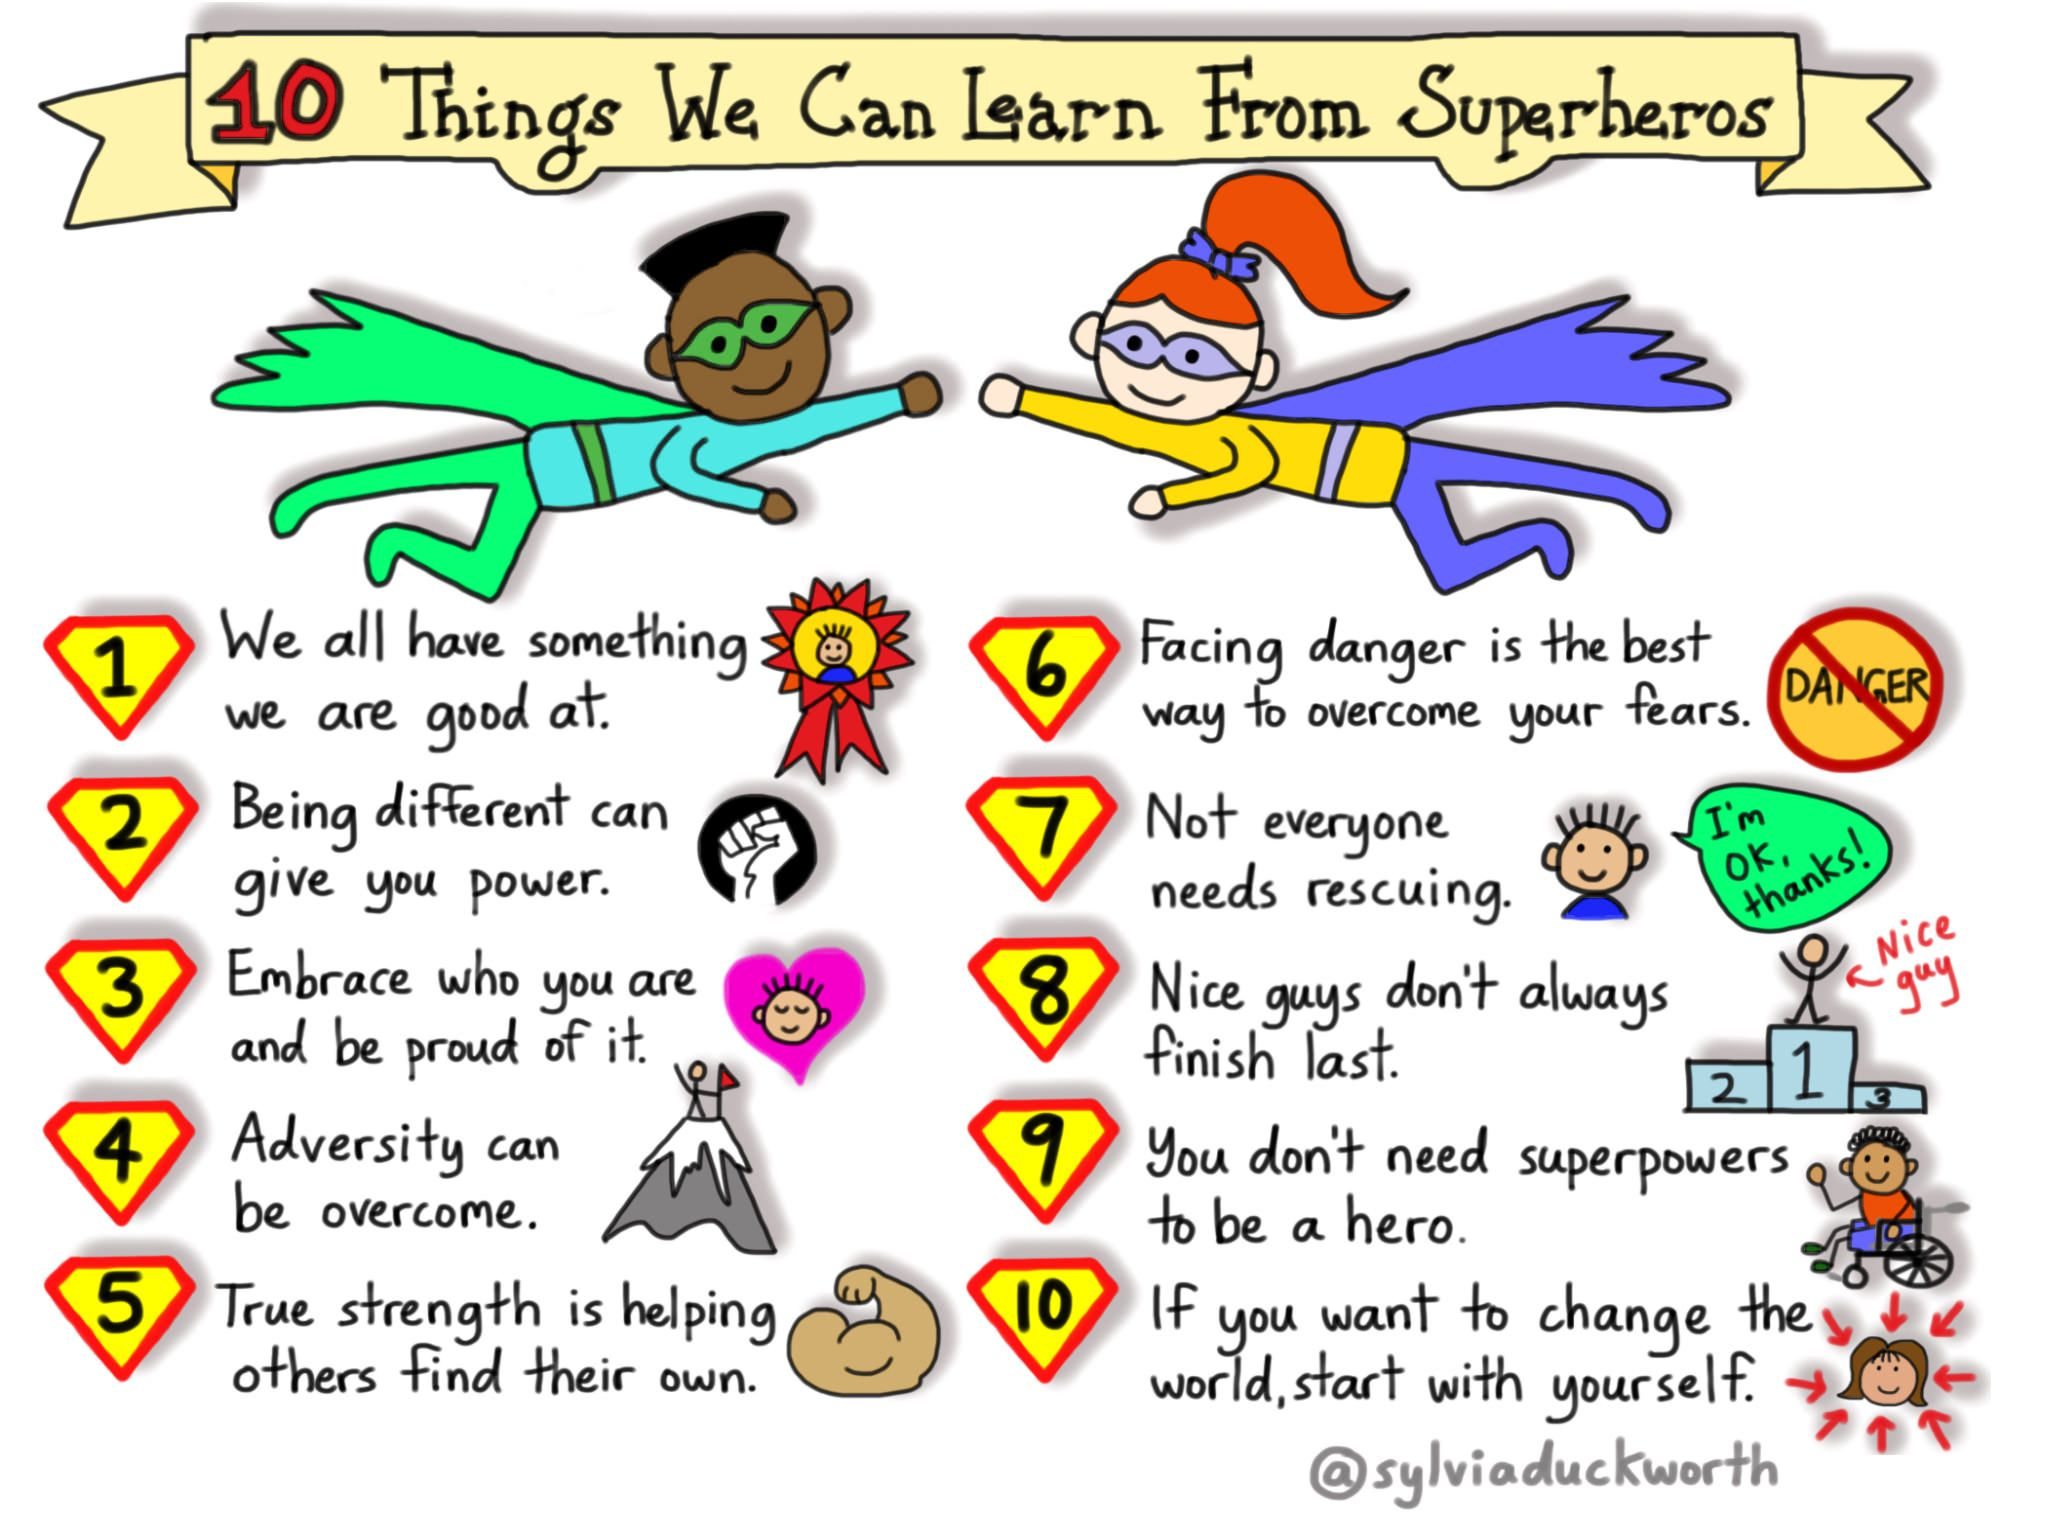 New sketchnote 10 Things We Can Learn